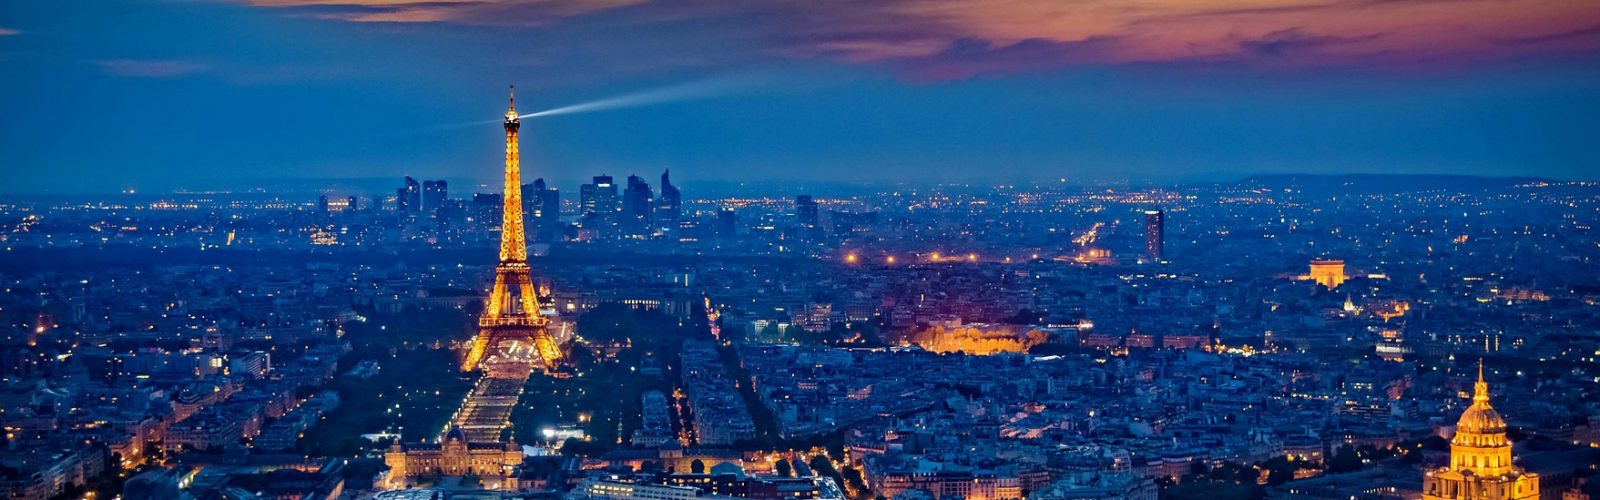 Aerial view of Paris, France, at night.